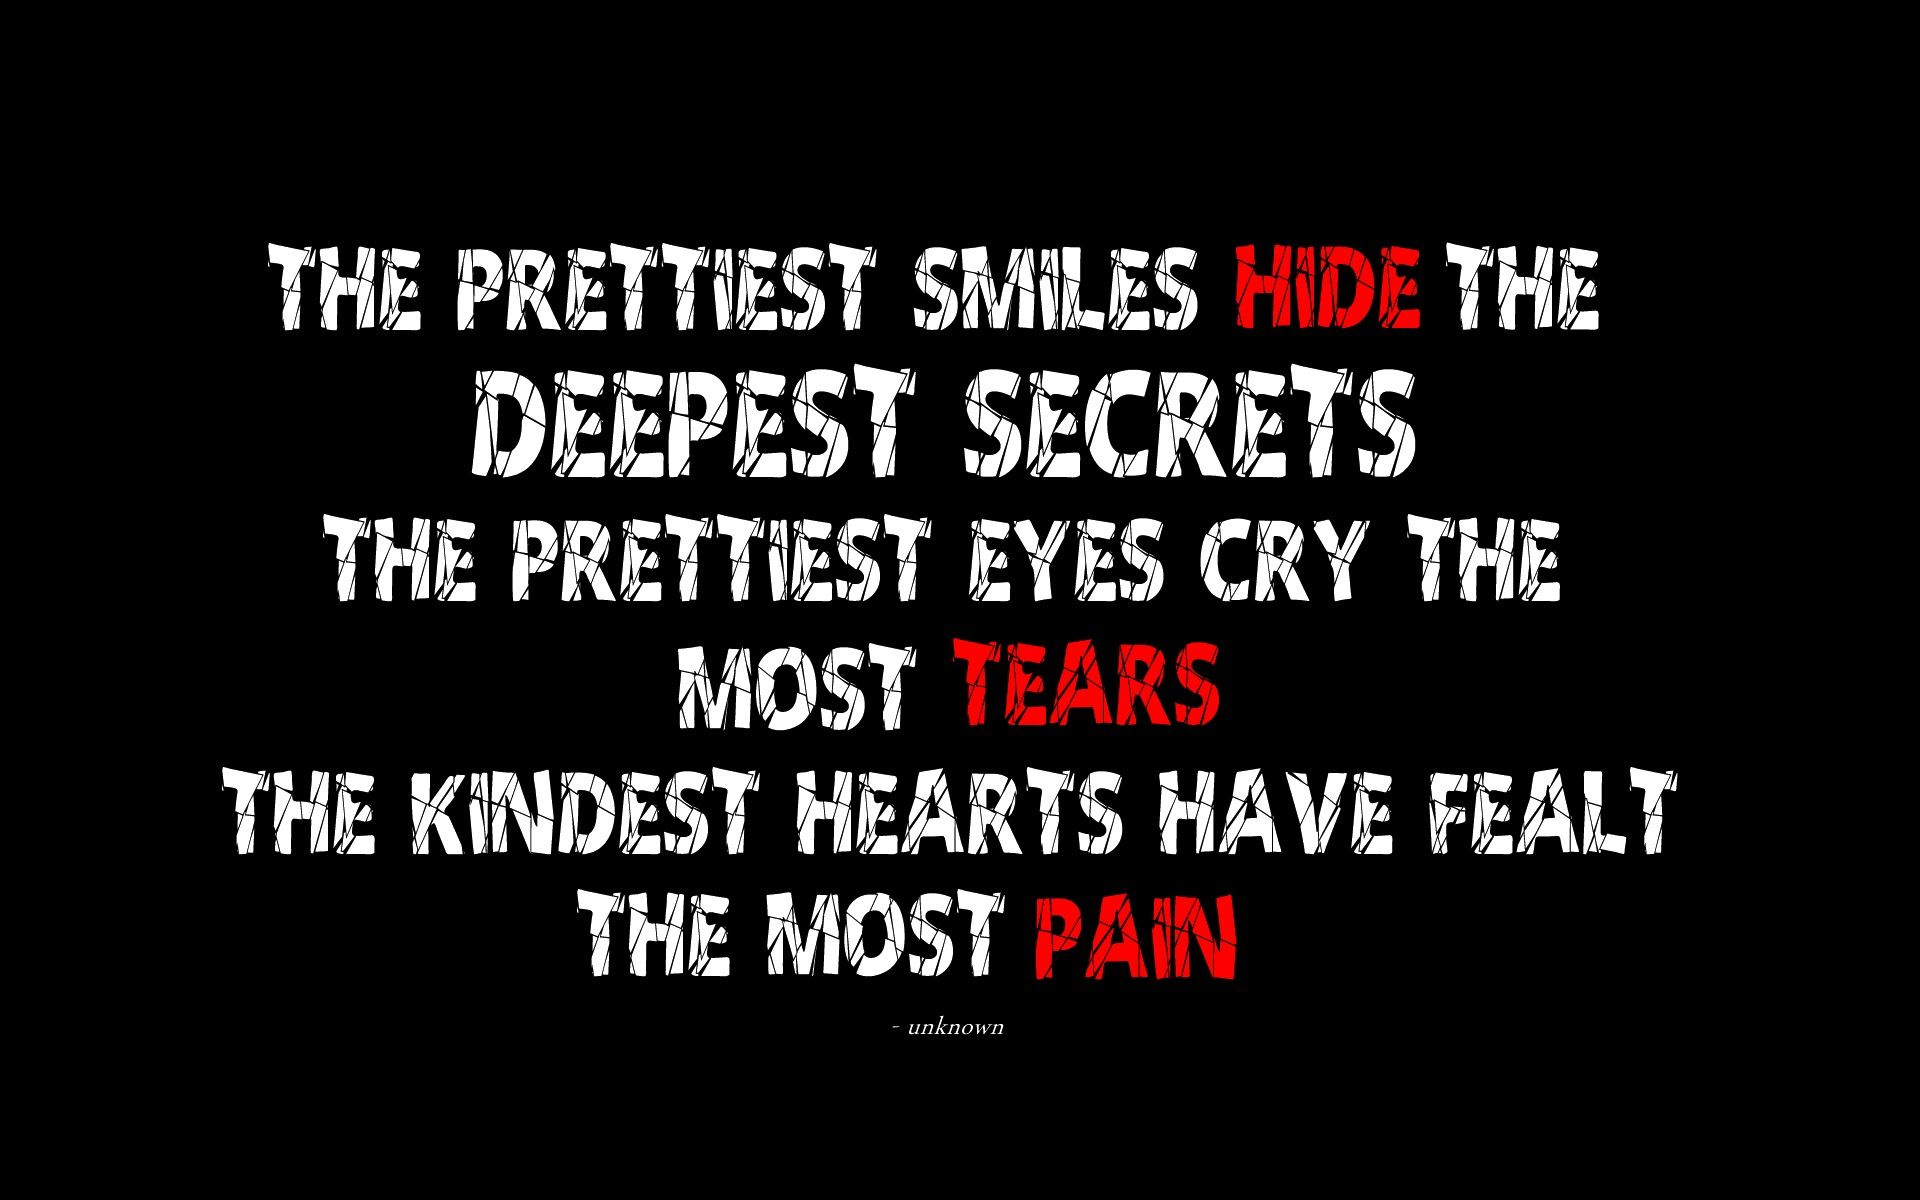 2 20 Great Random Quotes On Big Images The Prettiest Smiles